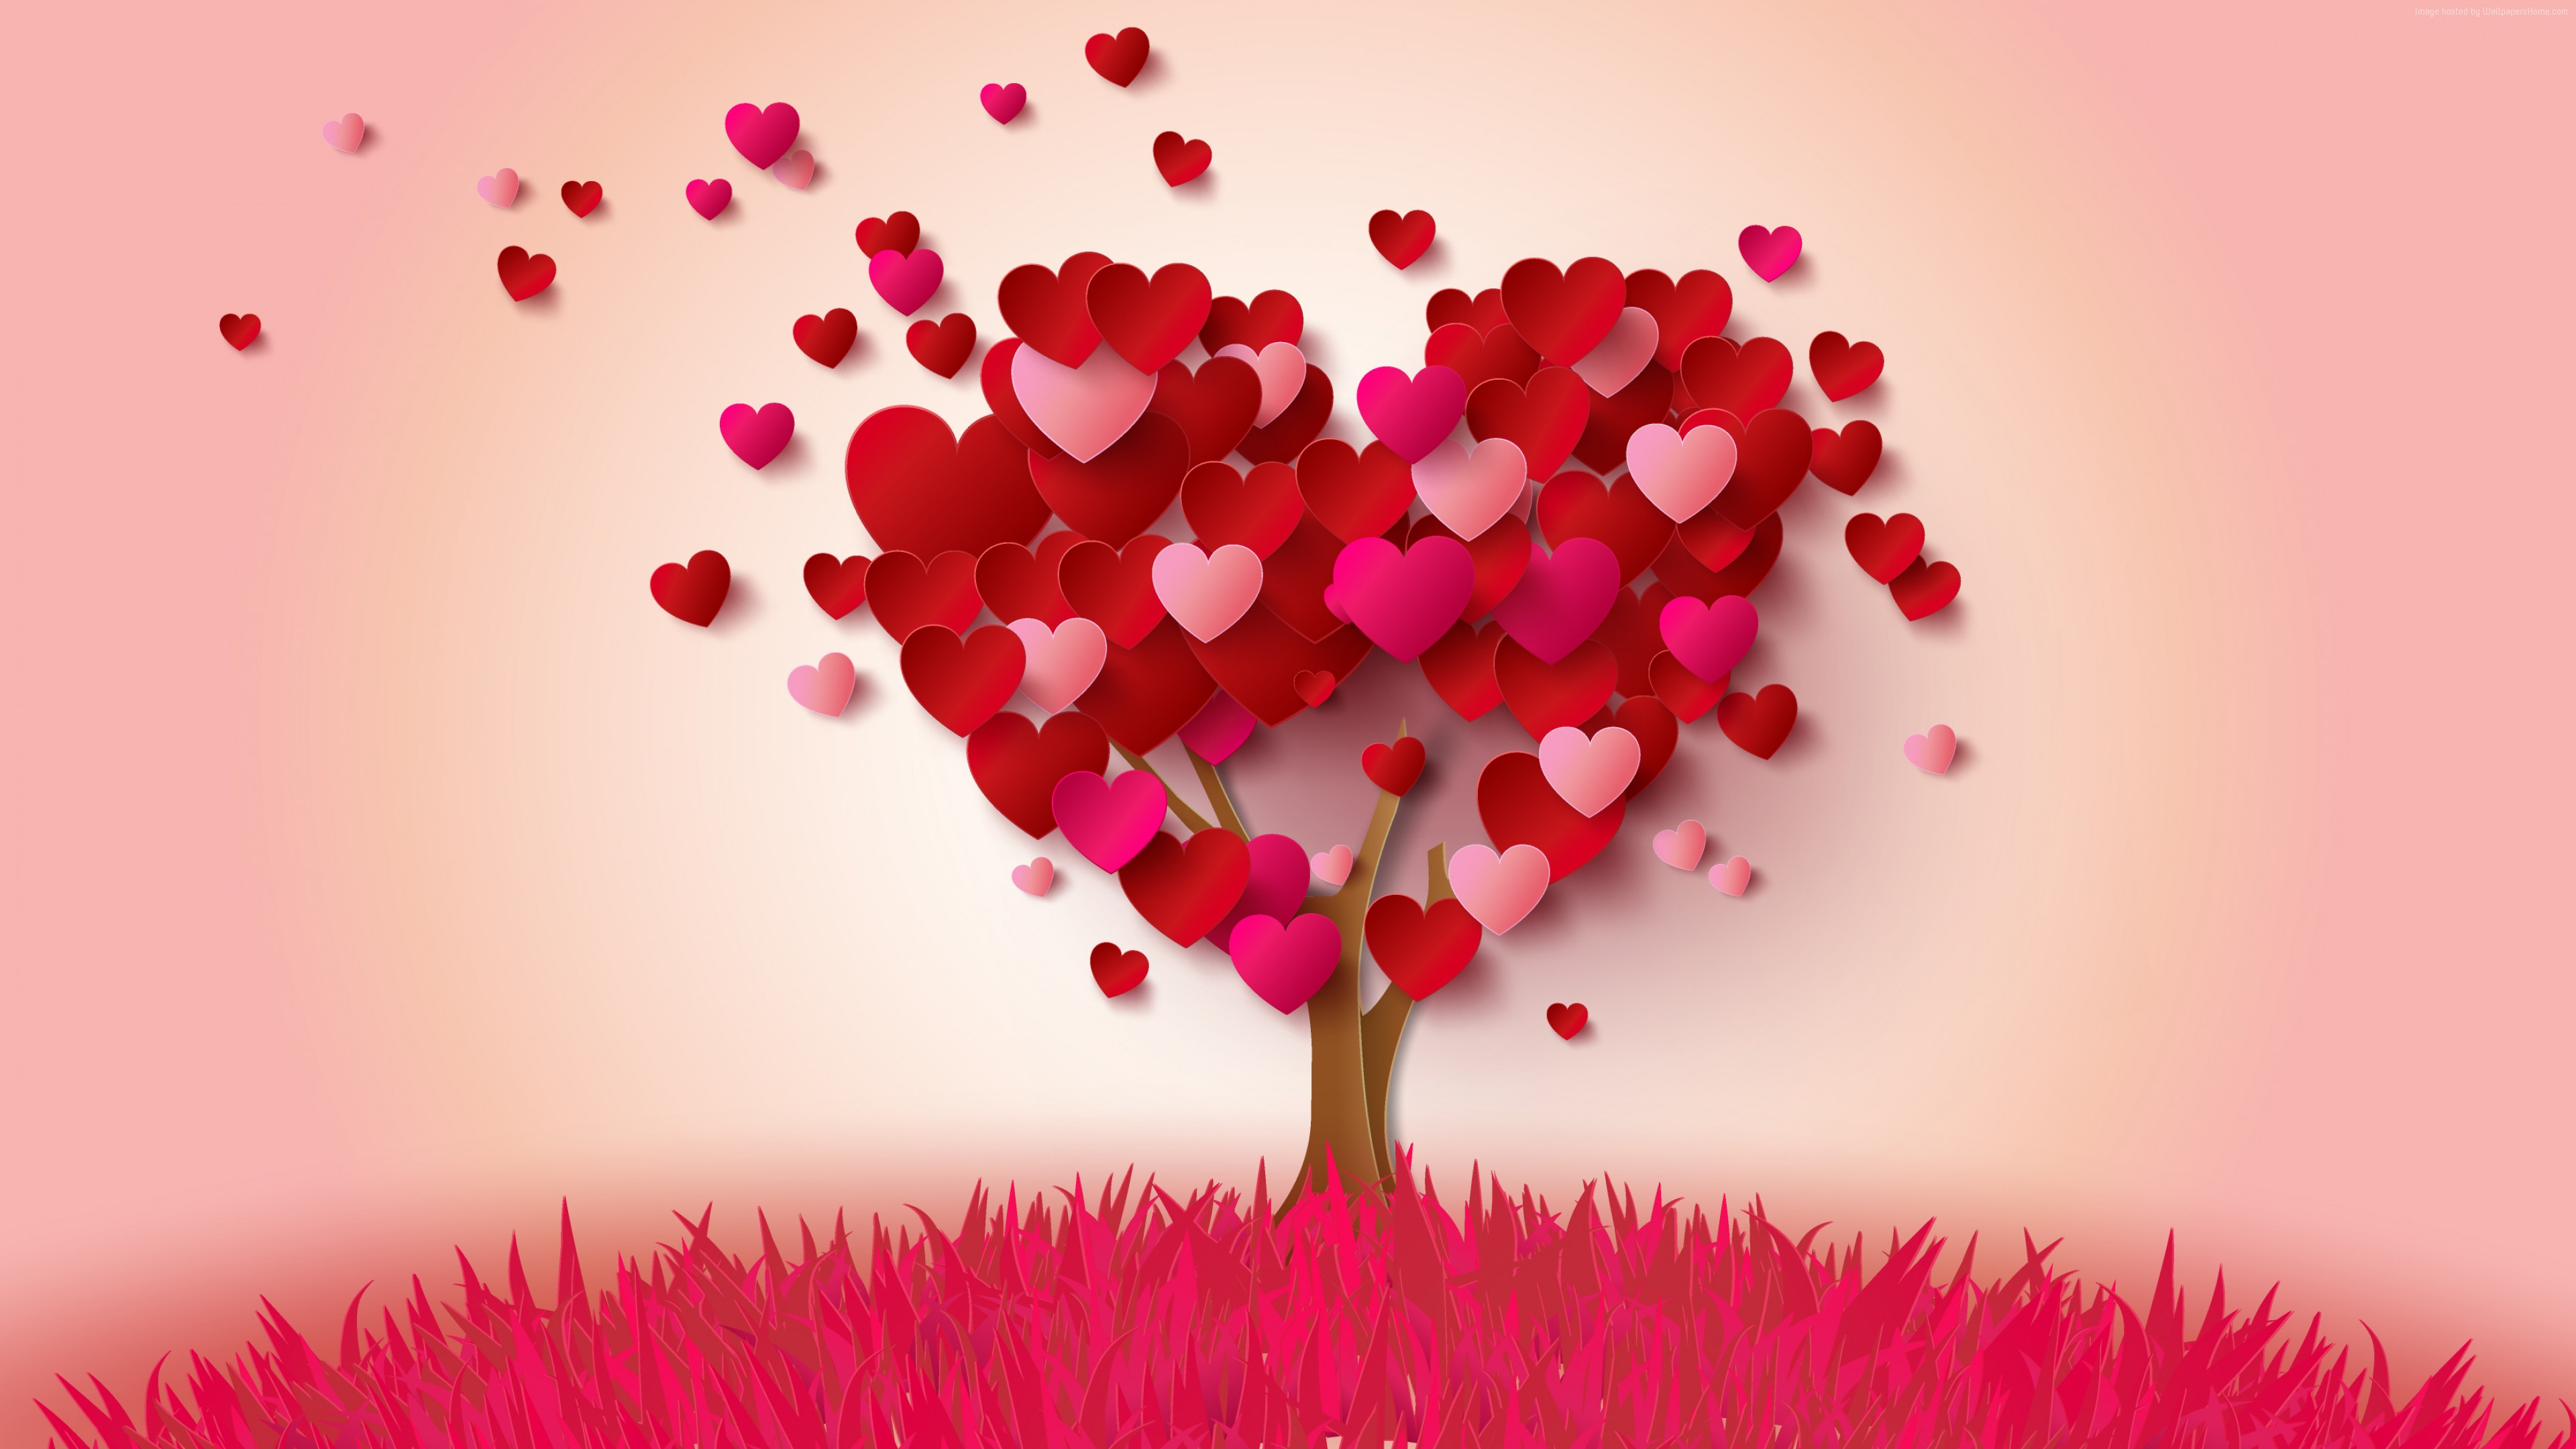 Stock Images love image, heart, tree, 4k, Stock Images